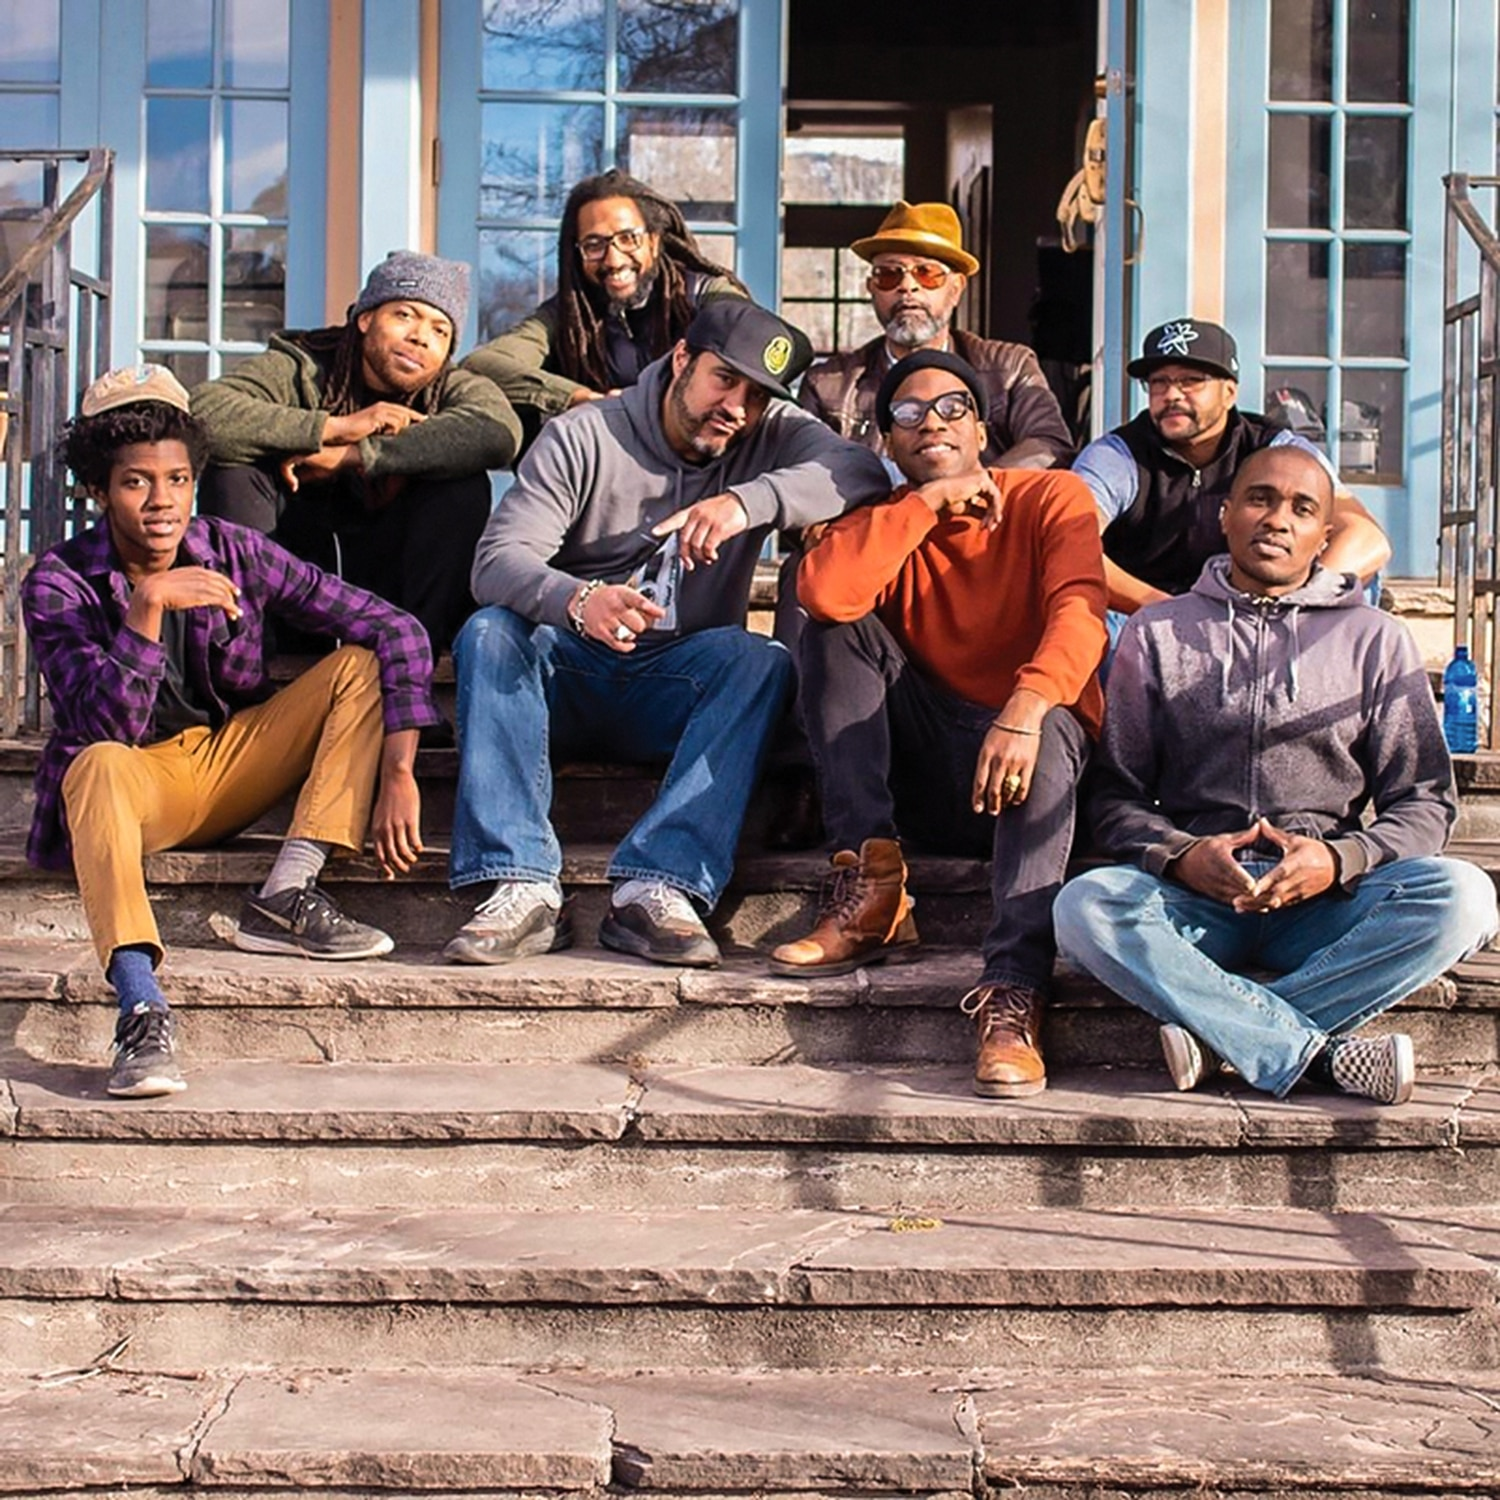 Ahmad recently assmebled a number of local black men to shoot a music video. Unplanned, the group wound up spending a large chunk of time talking and healing together.